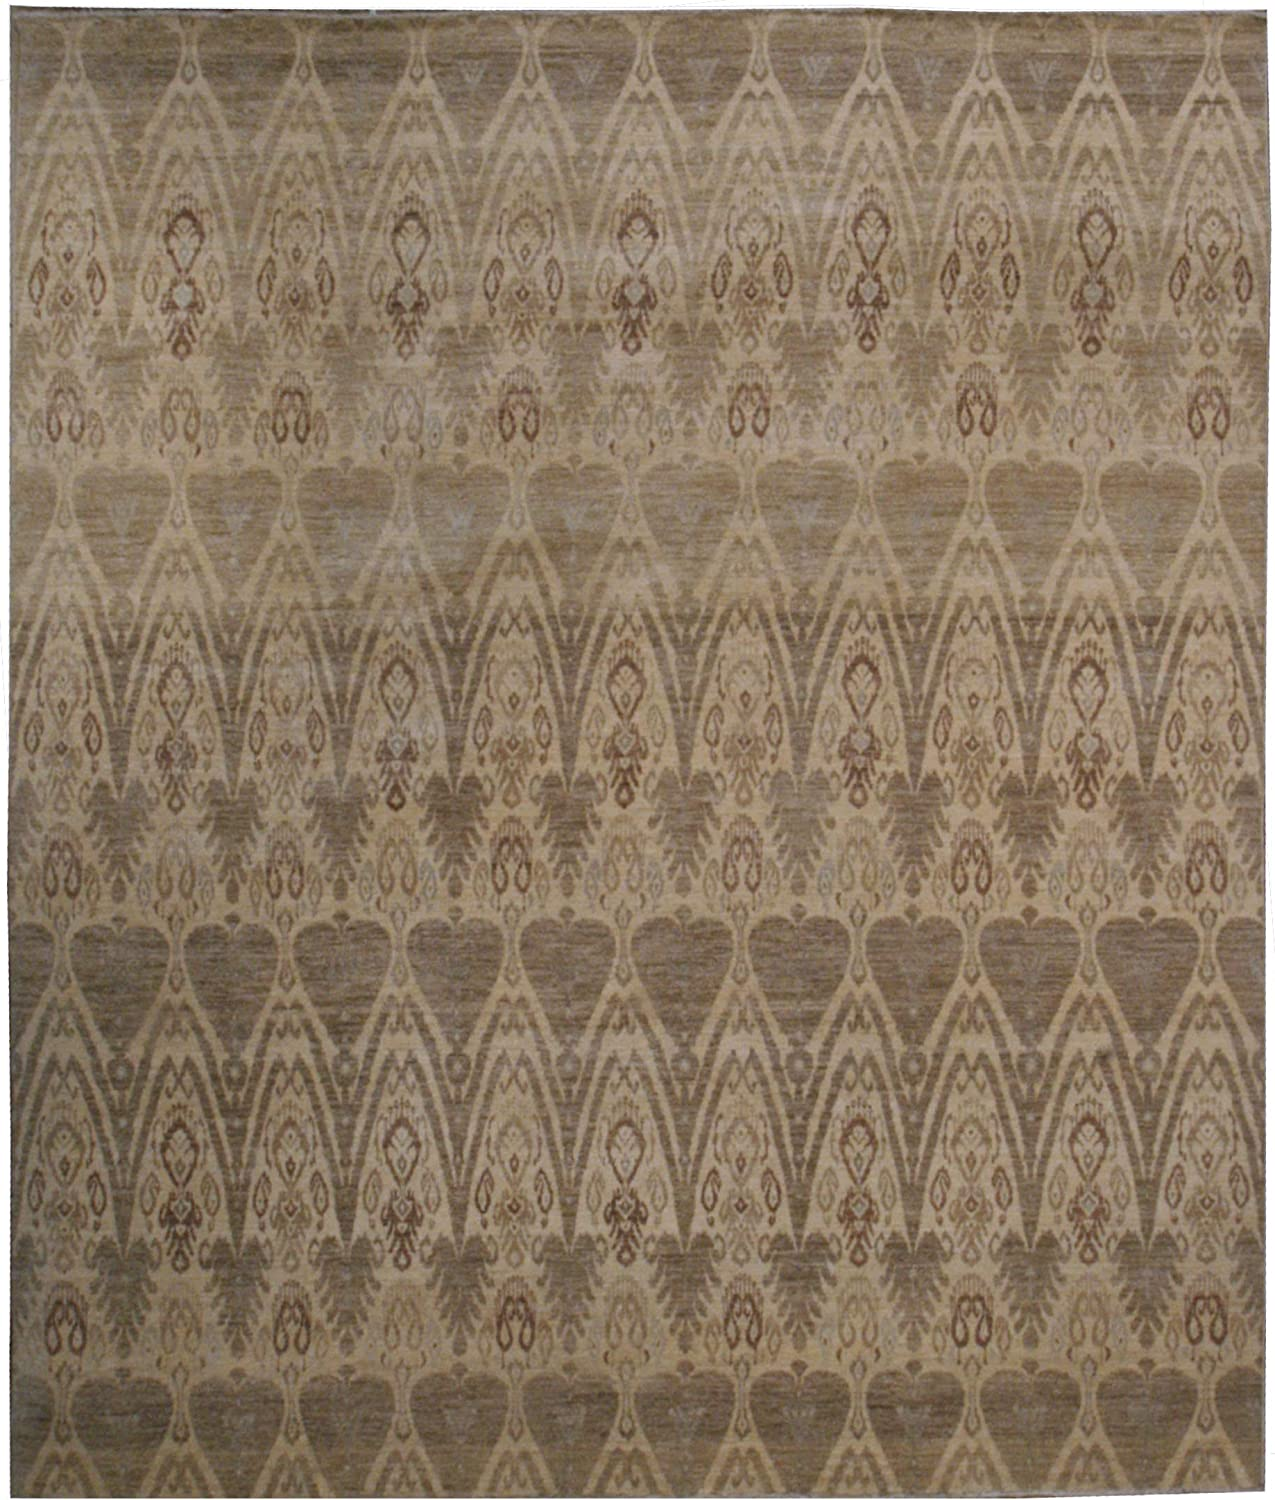 Transitional Ikat Rug Wool 10' - Challenge the lowest price of Japan ☆ 8' x Max 73% OFF